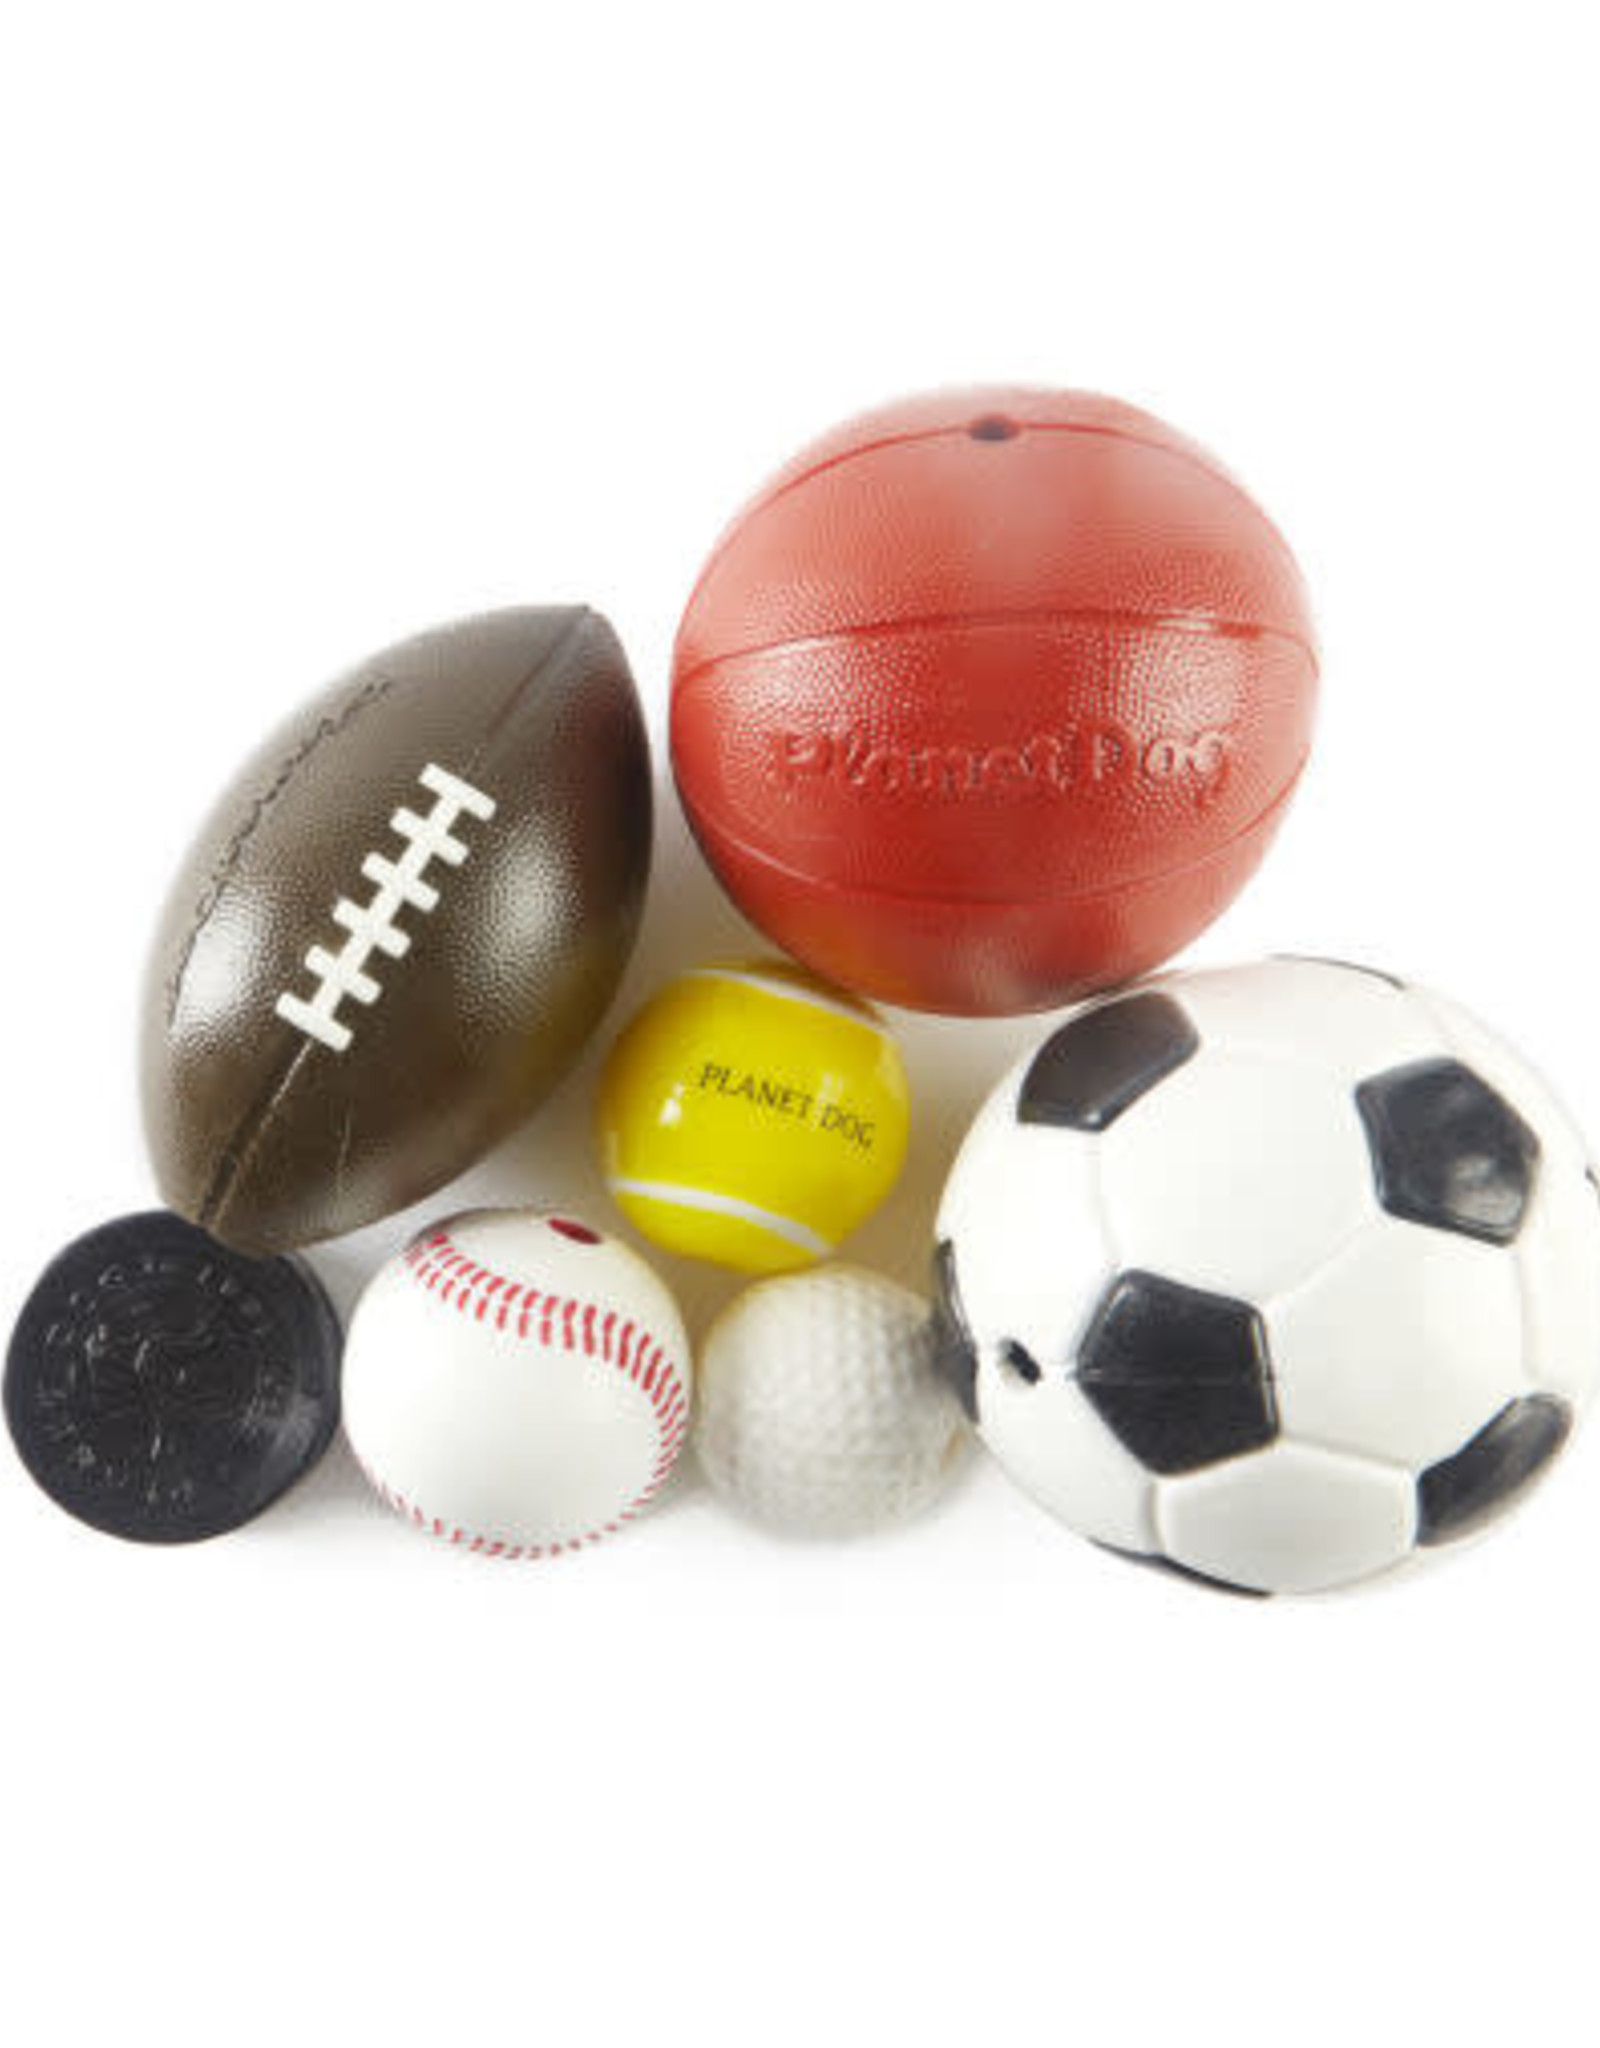 Planet Dog Orbee Tuff Sports Ball